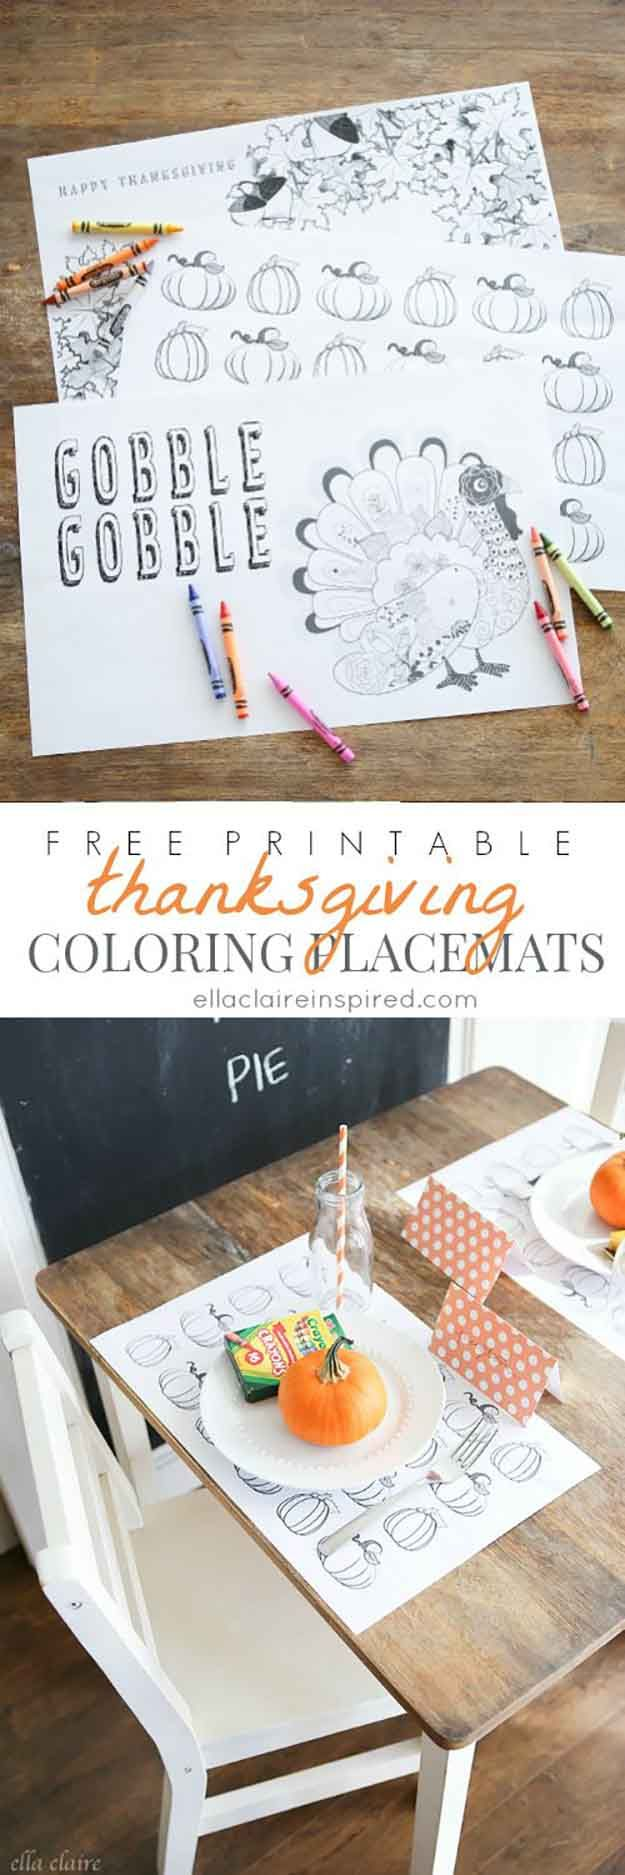 Homemade thanksgiving placemat ideas coloring homemade for Homemade thanksgiving decorations for the home